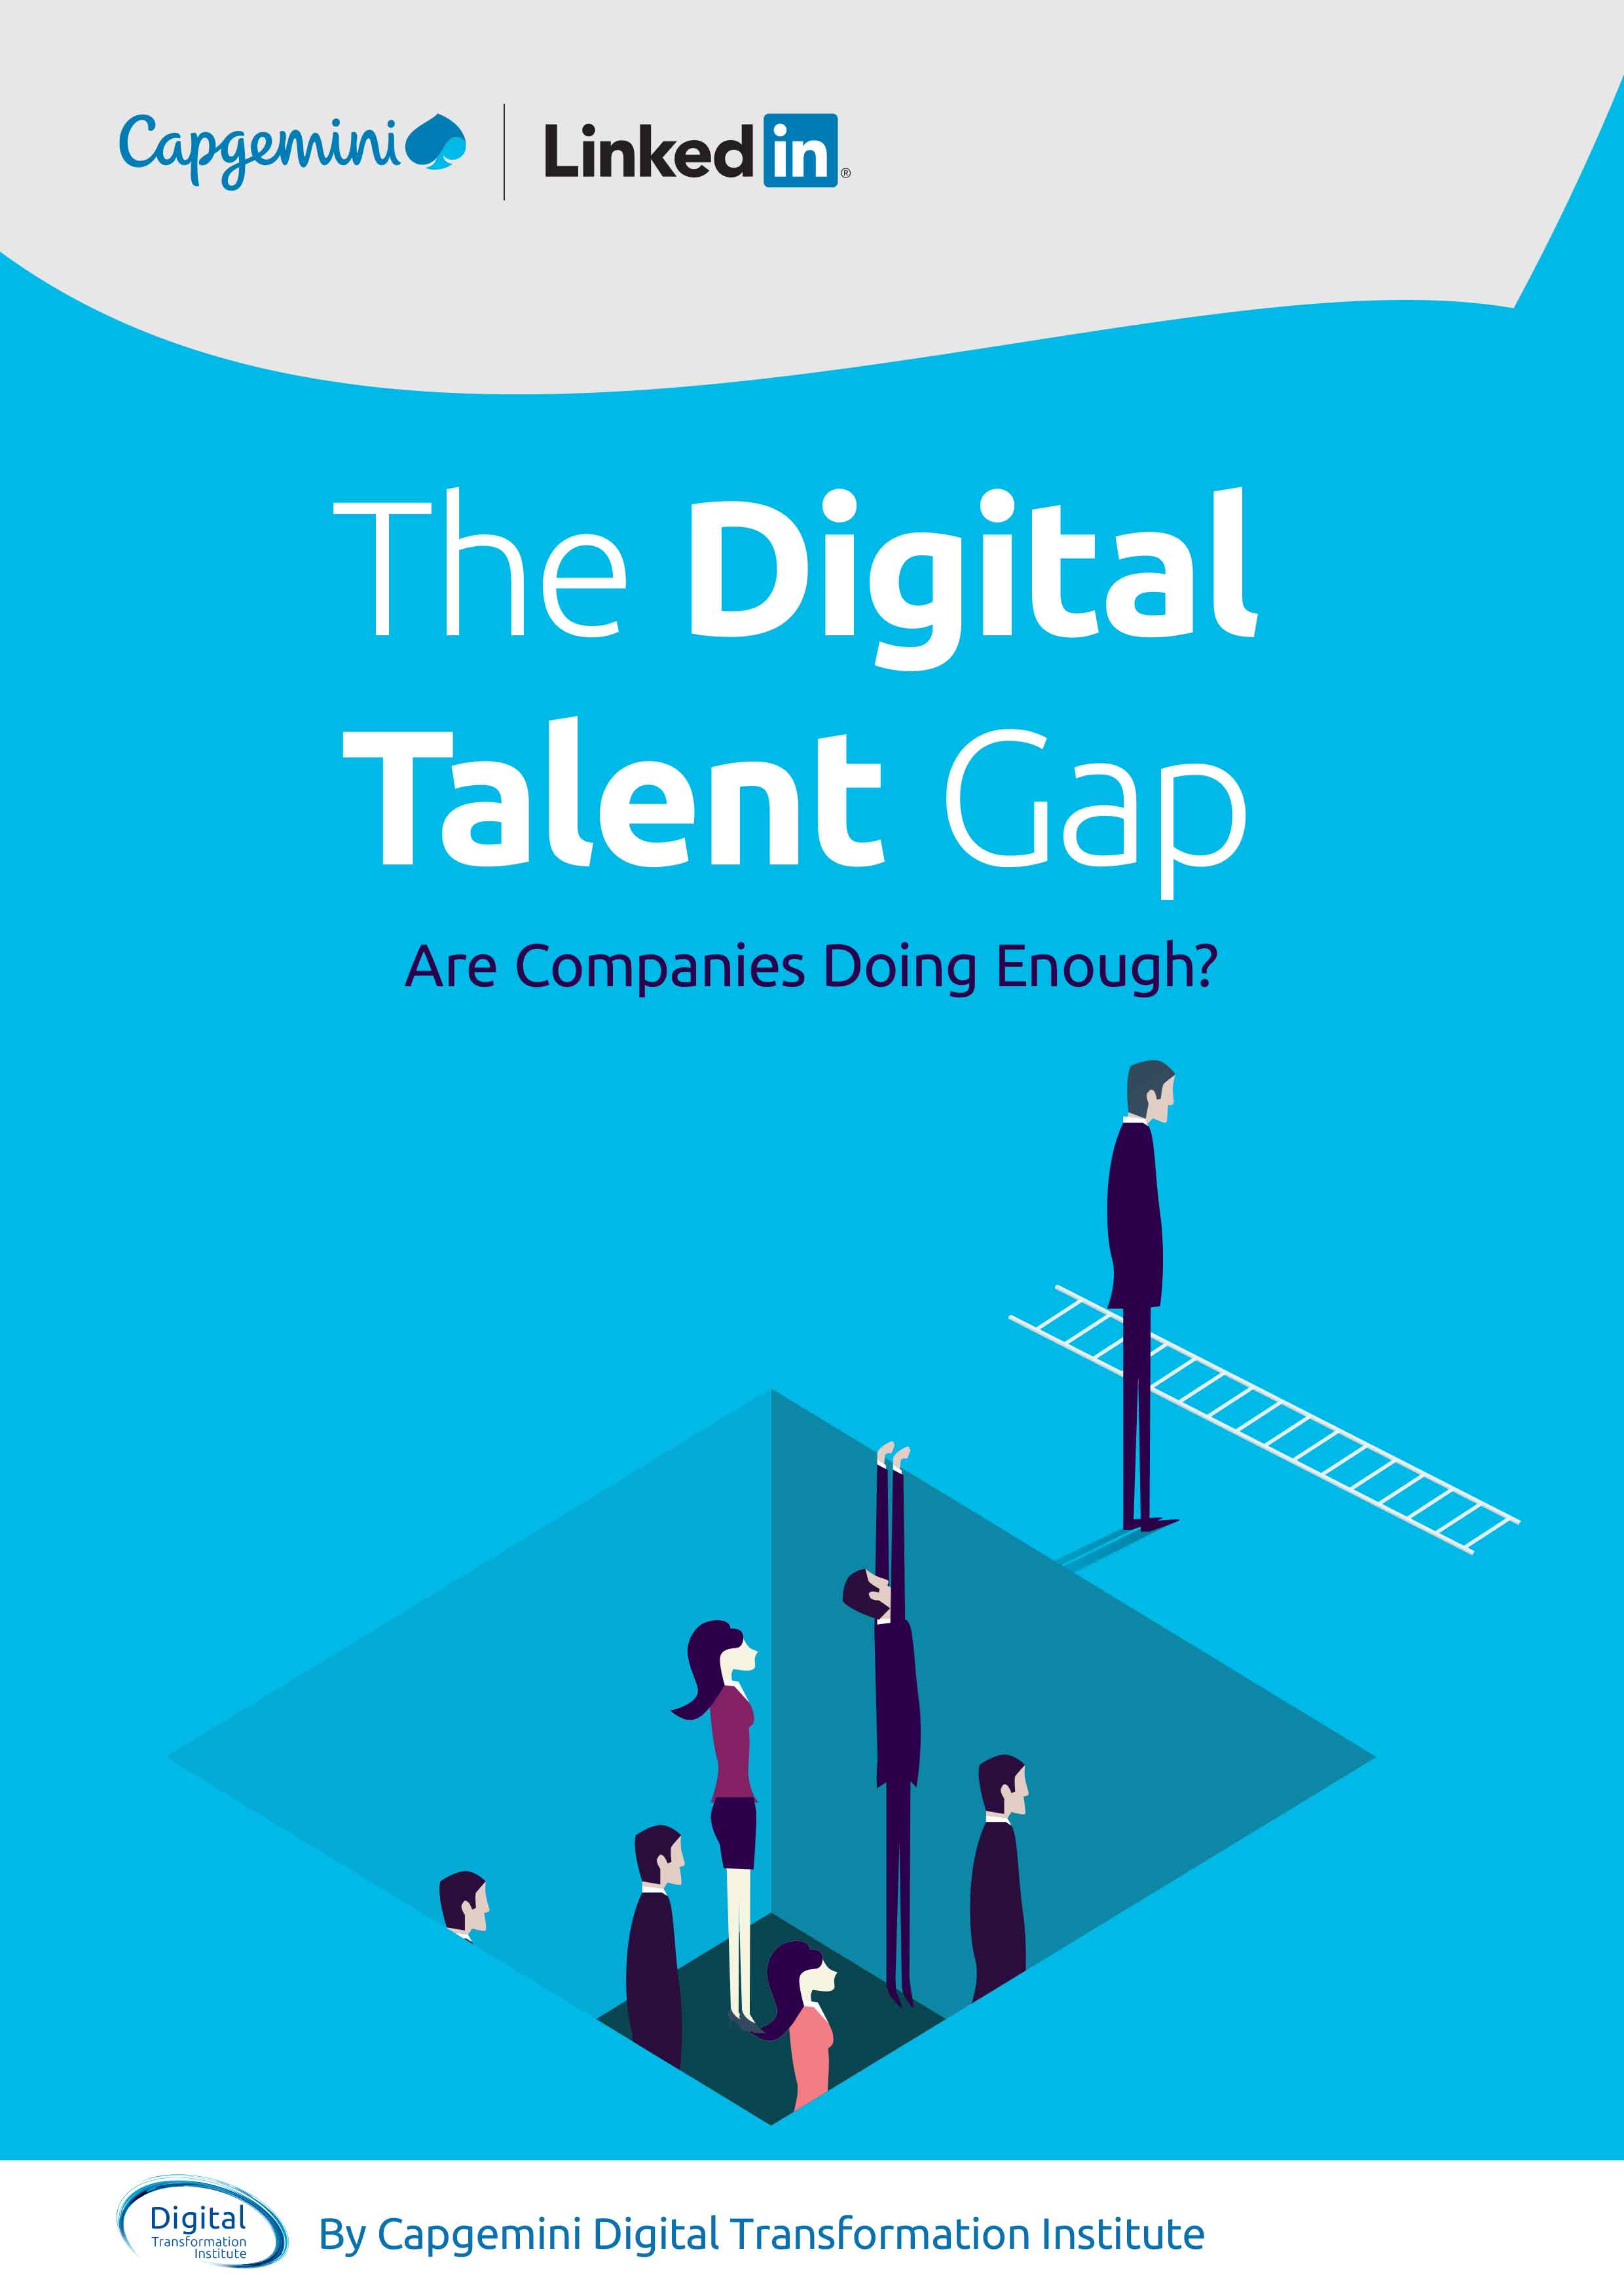 The Digital Talent Gap - Are companies doing enough?